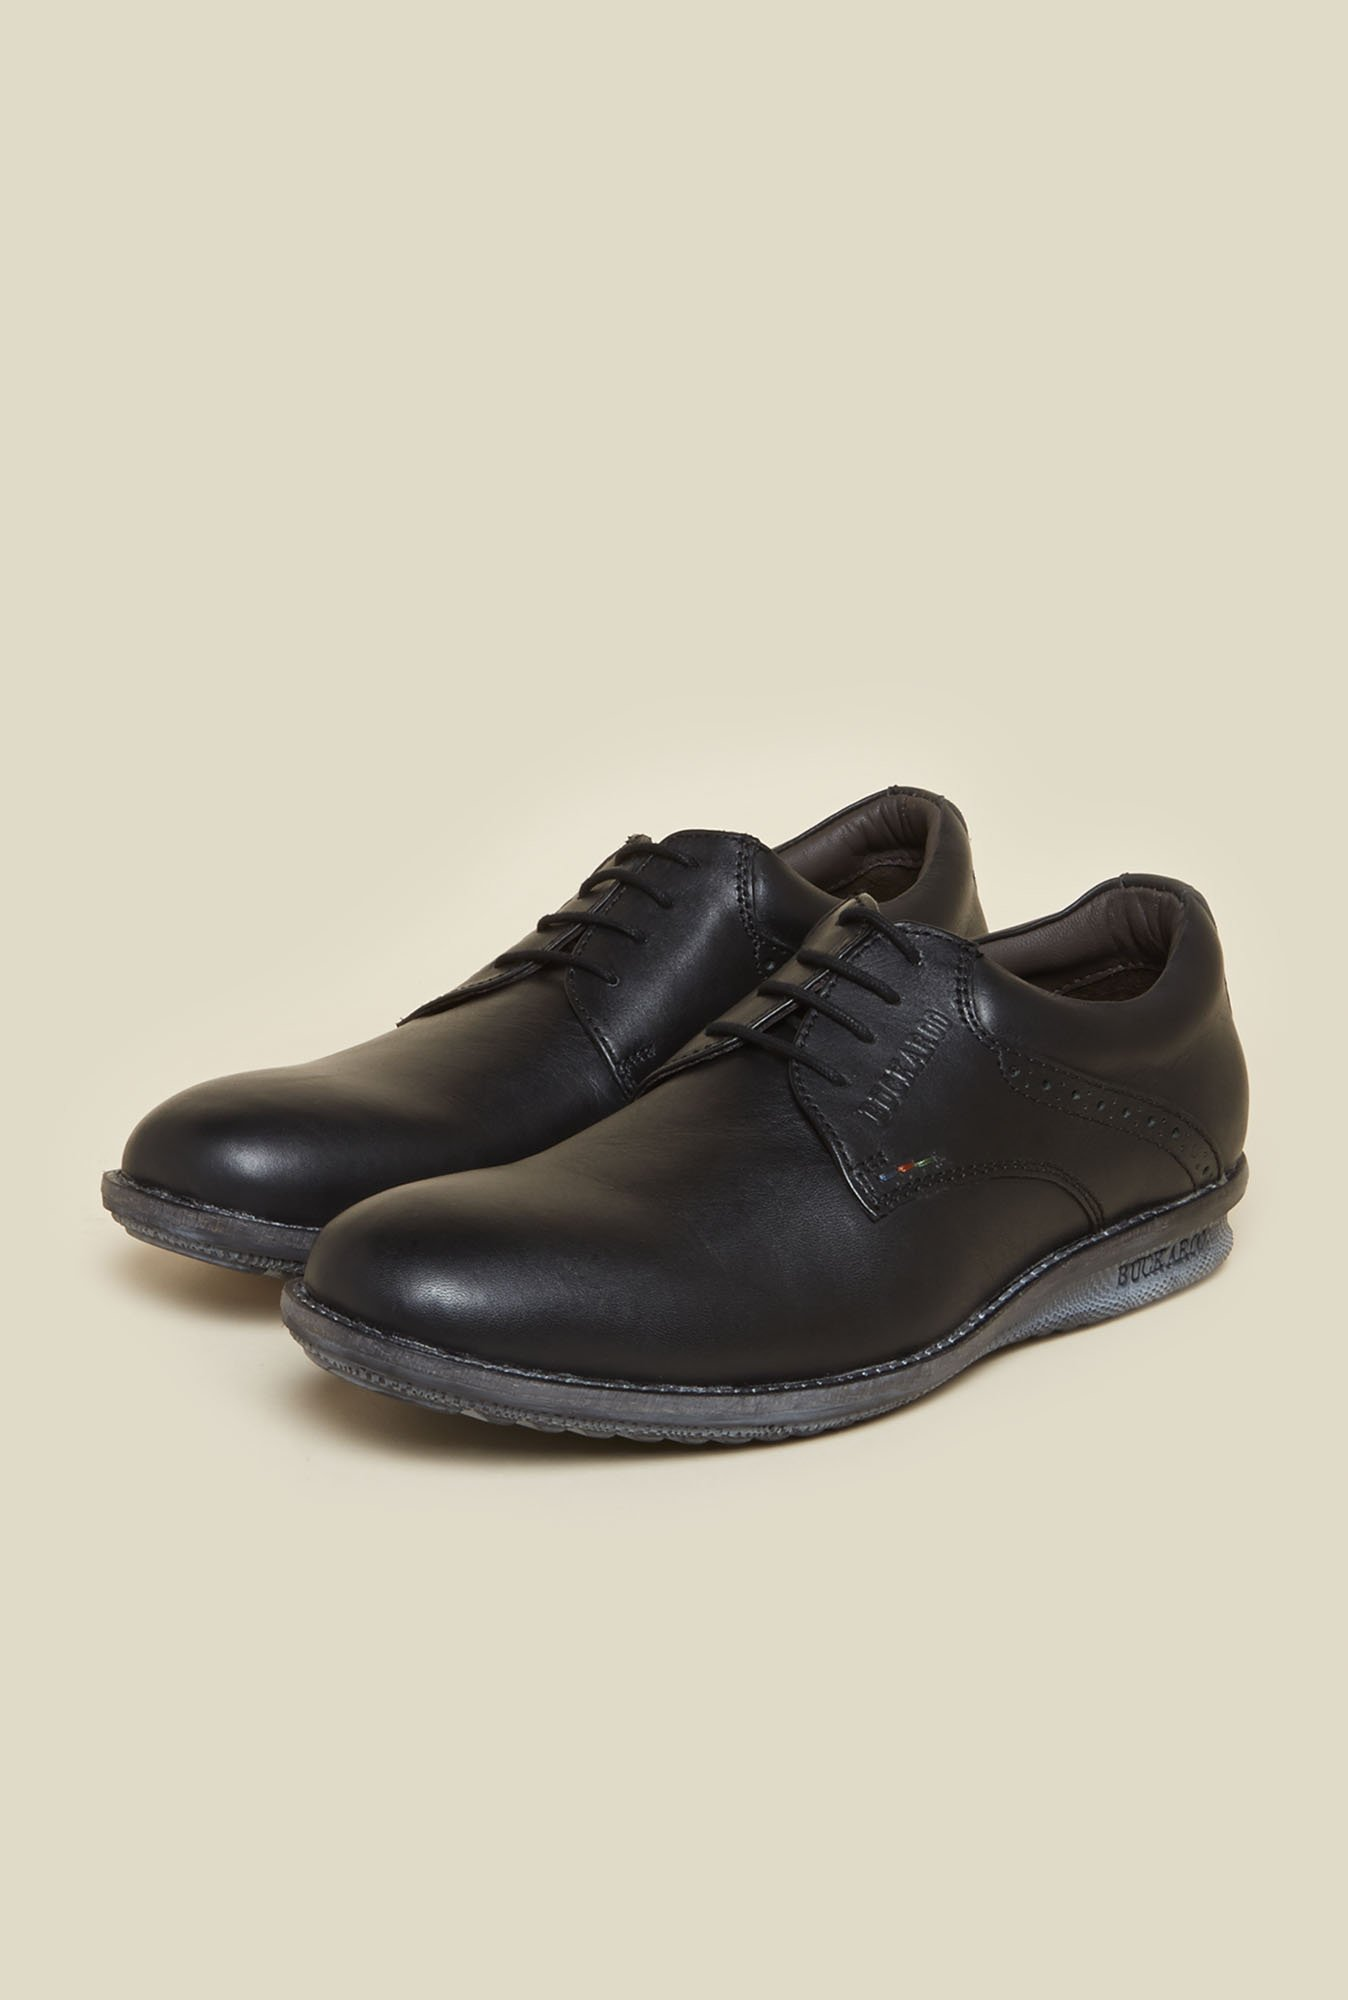 Buckaroo Fernando Black Derby Shoes